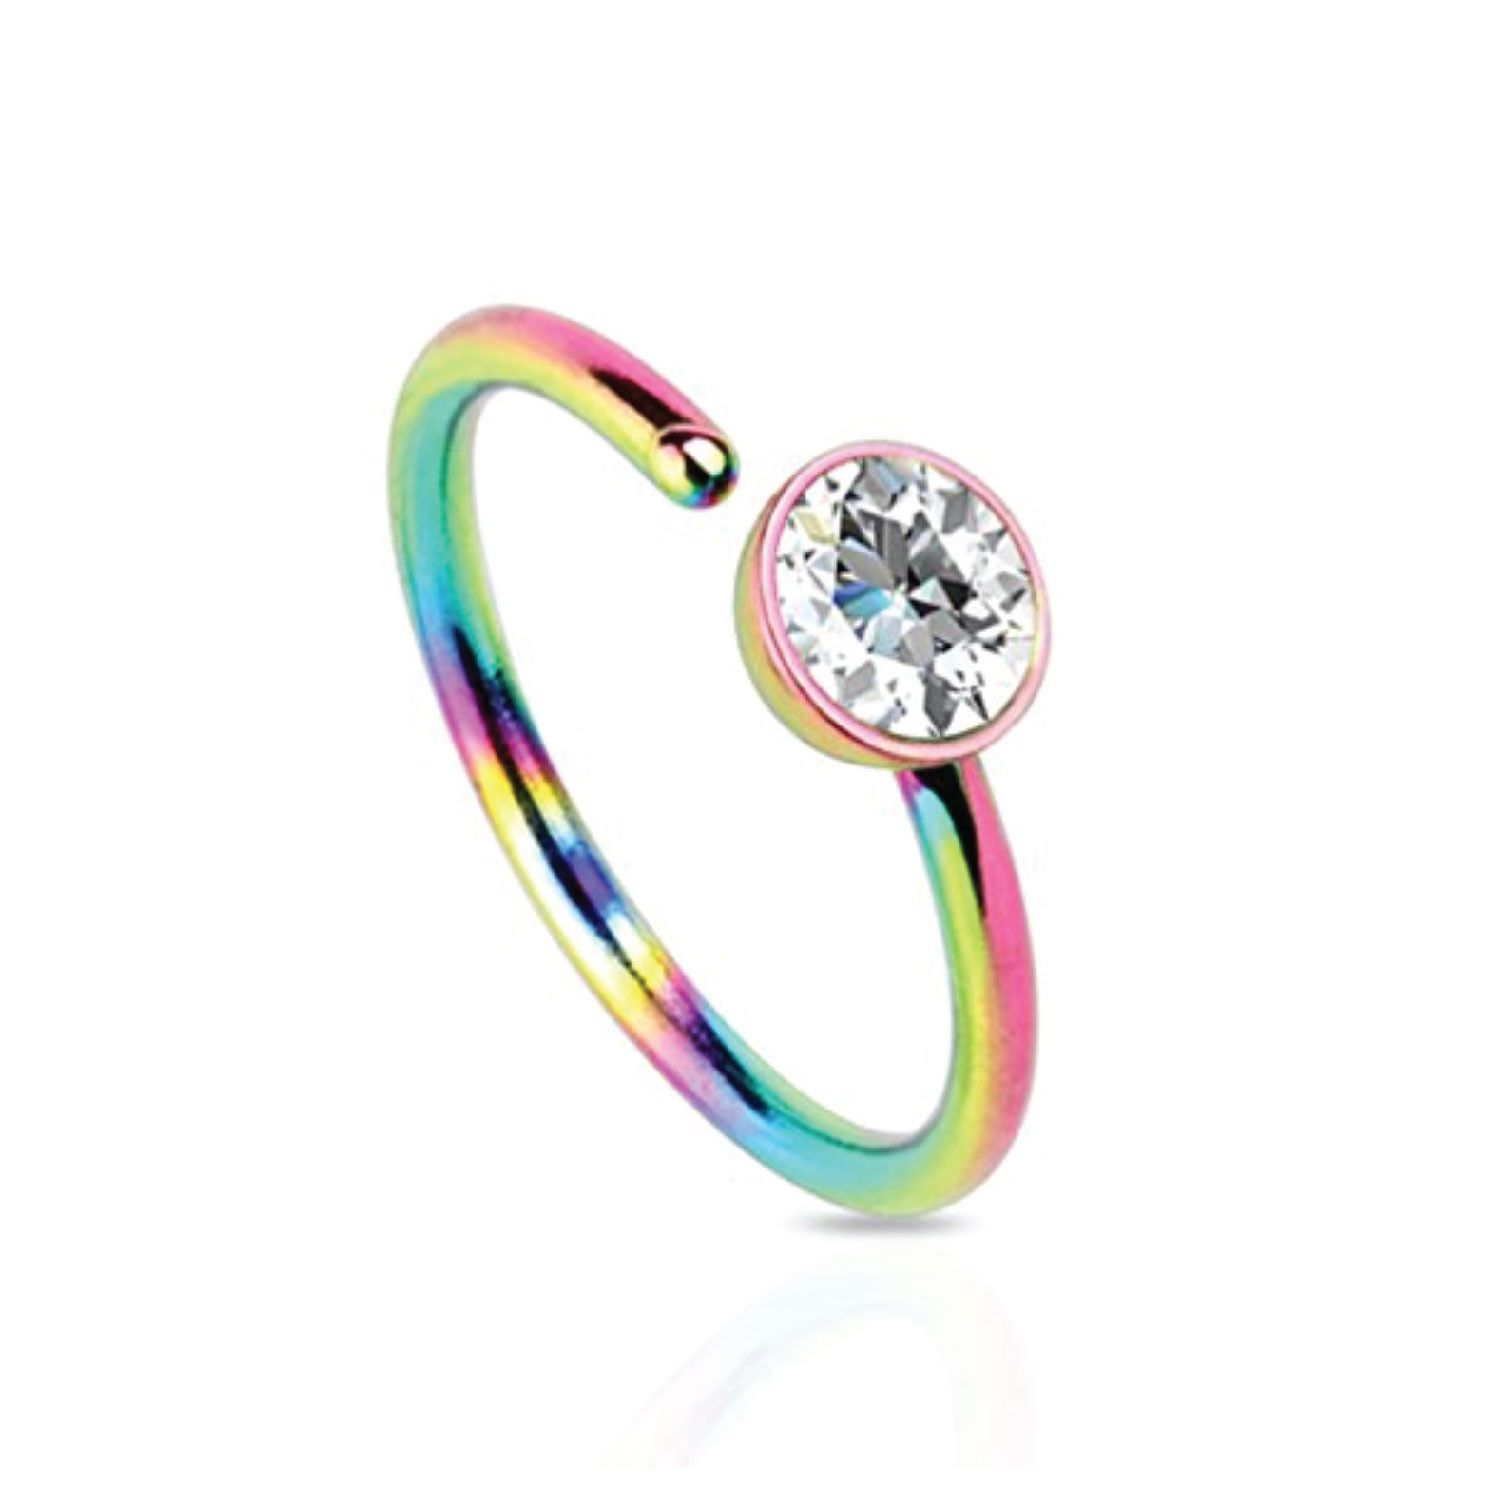 Clear nose piercing  BodyJYou Nose Ring Hoop Stainless Steel Rainbow Clear CZ Gem G